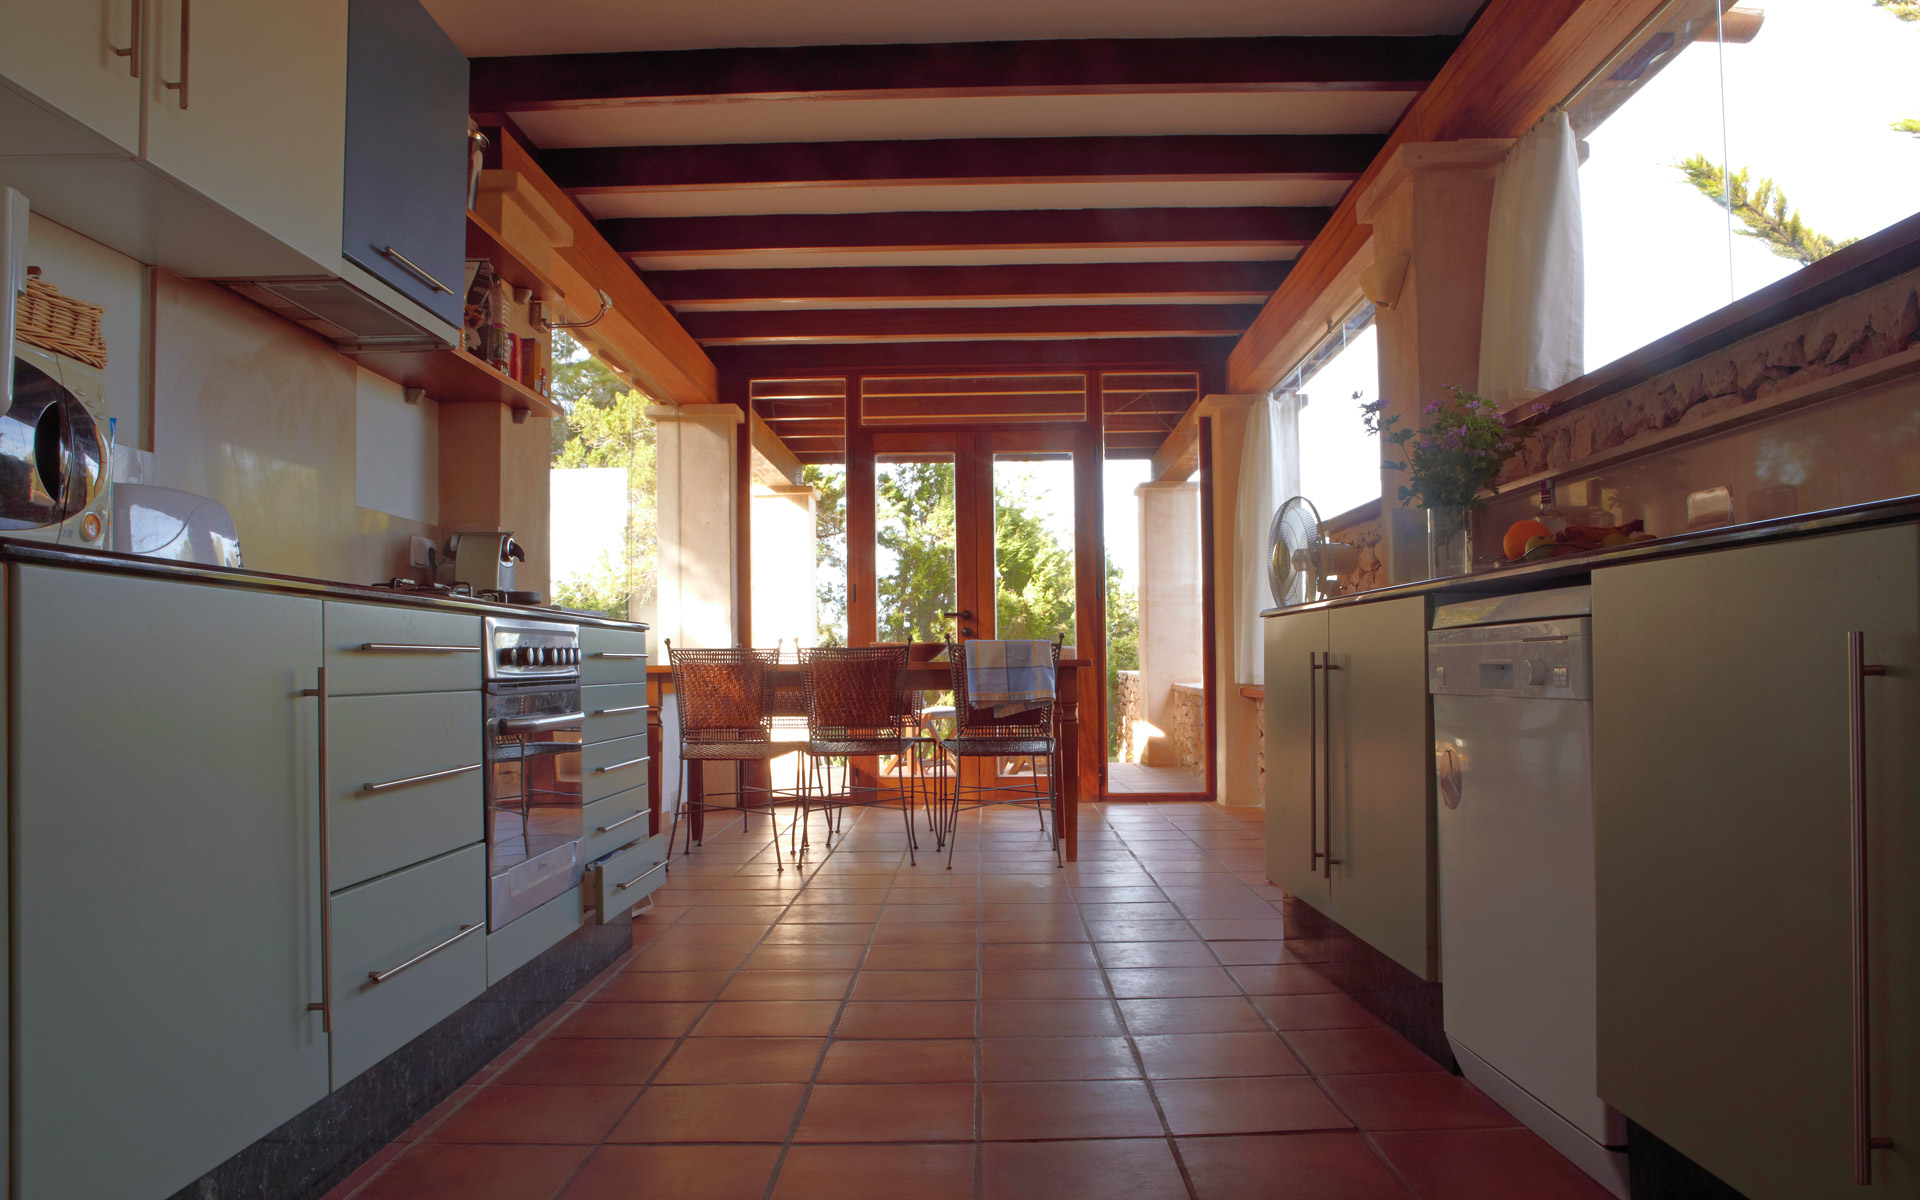 Kitchen in a house of Ibiza